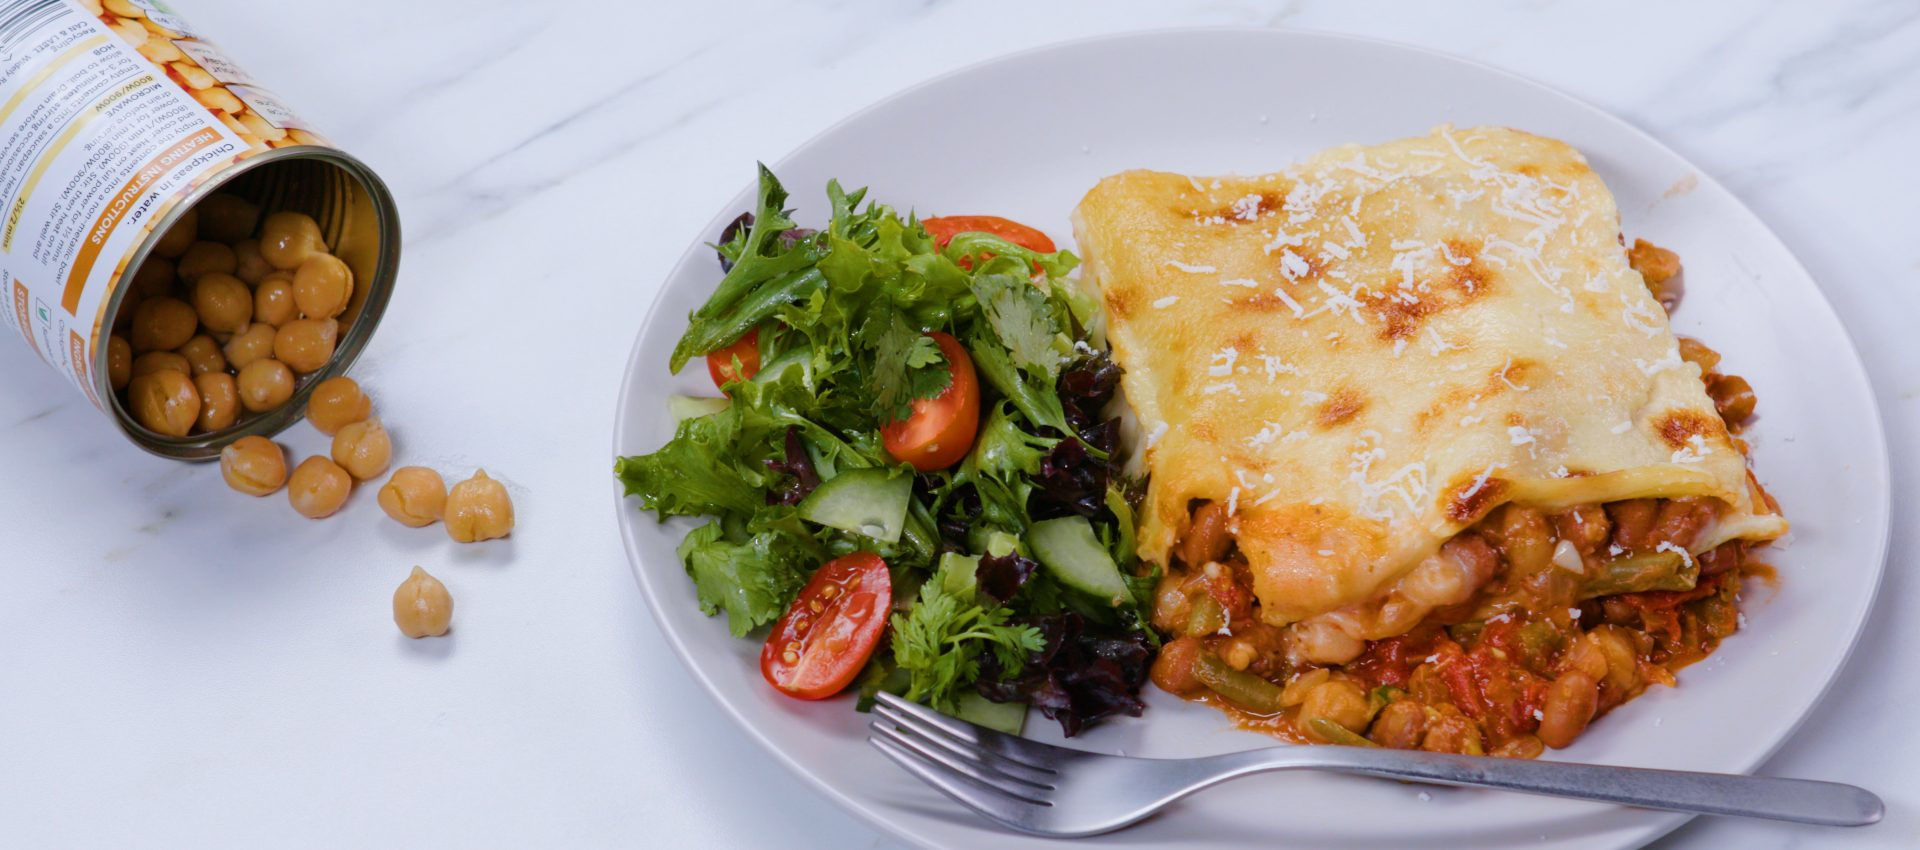 Meat-free Lasagne - Love Canned Food